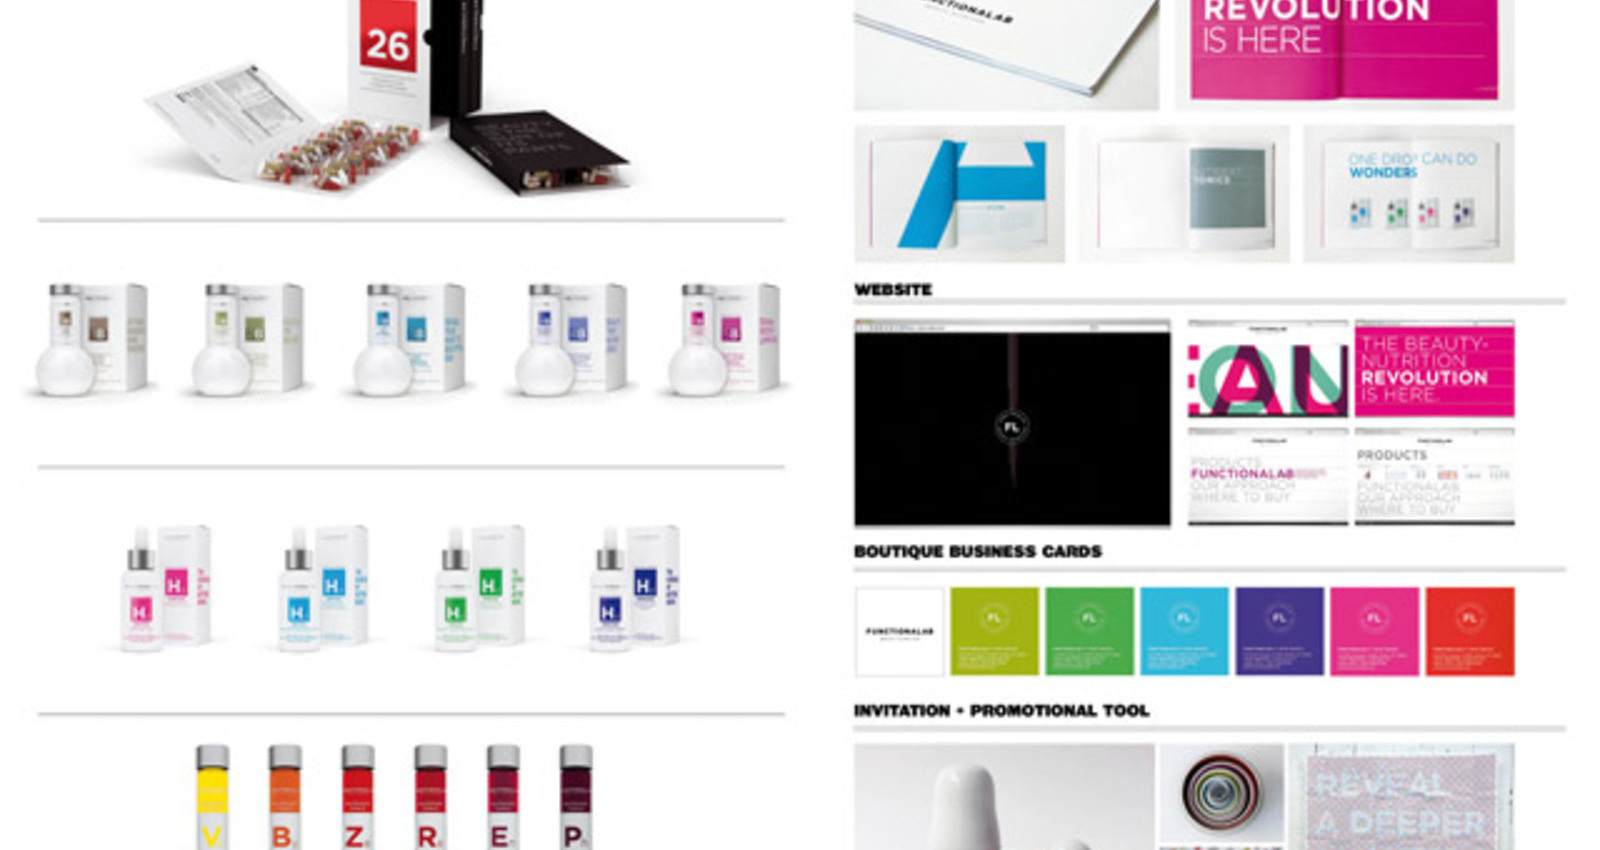 Functionalab - Corporate identity